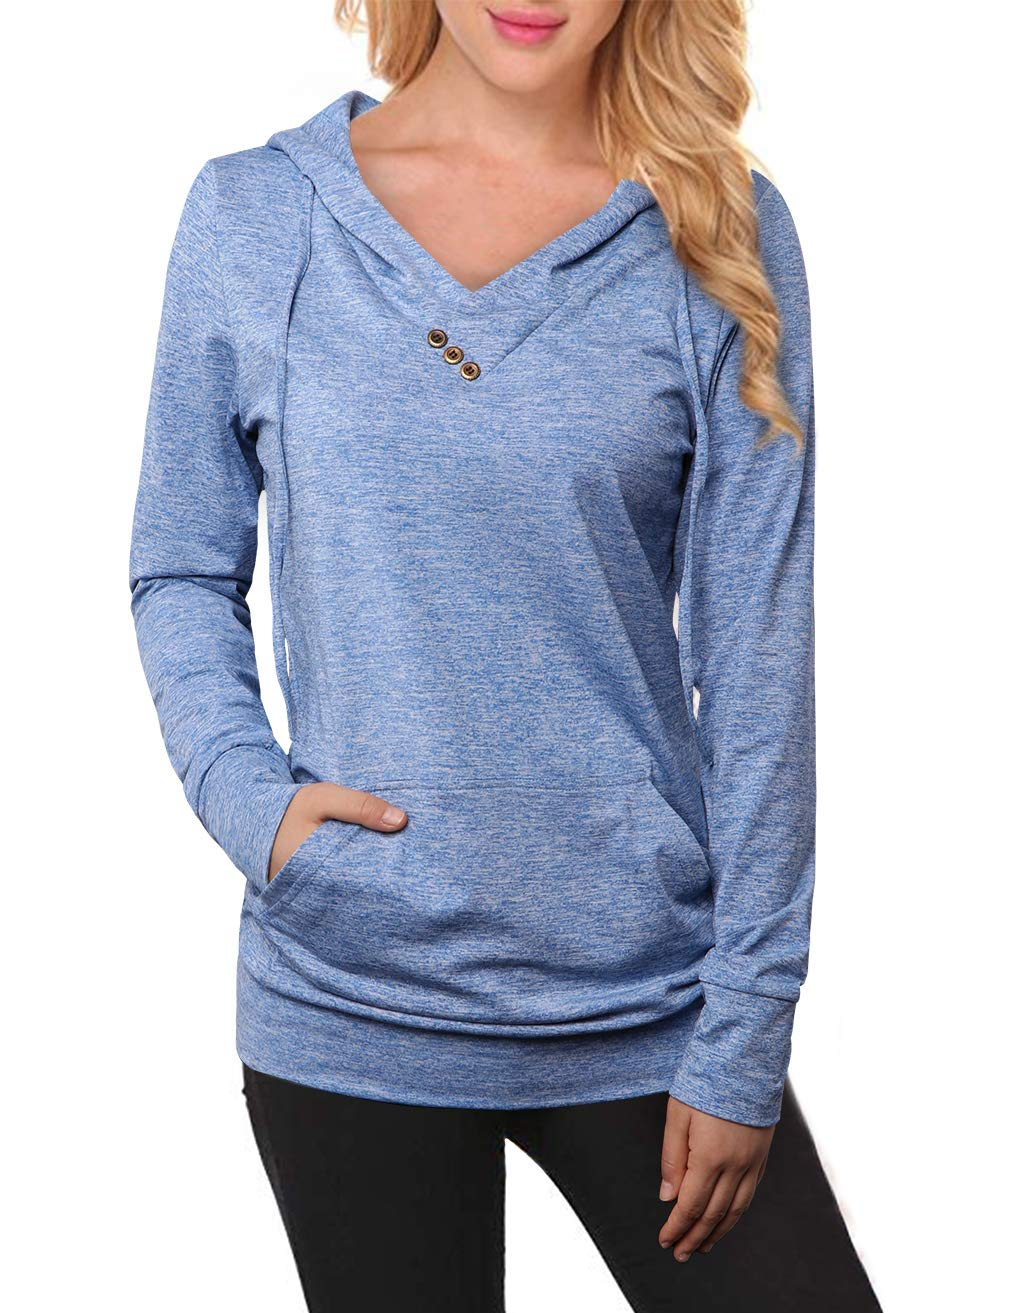 MOOSUNGEEK Tunic Hoodie,Women 2017 Boutique Form Fitted Pullover Sweatshirt